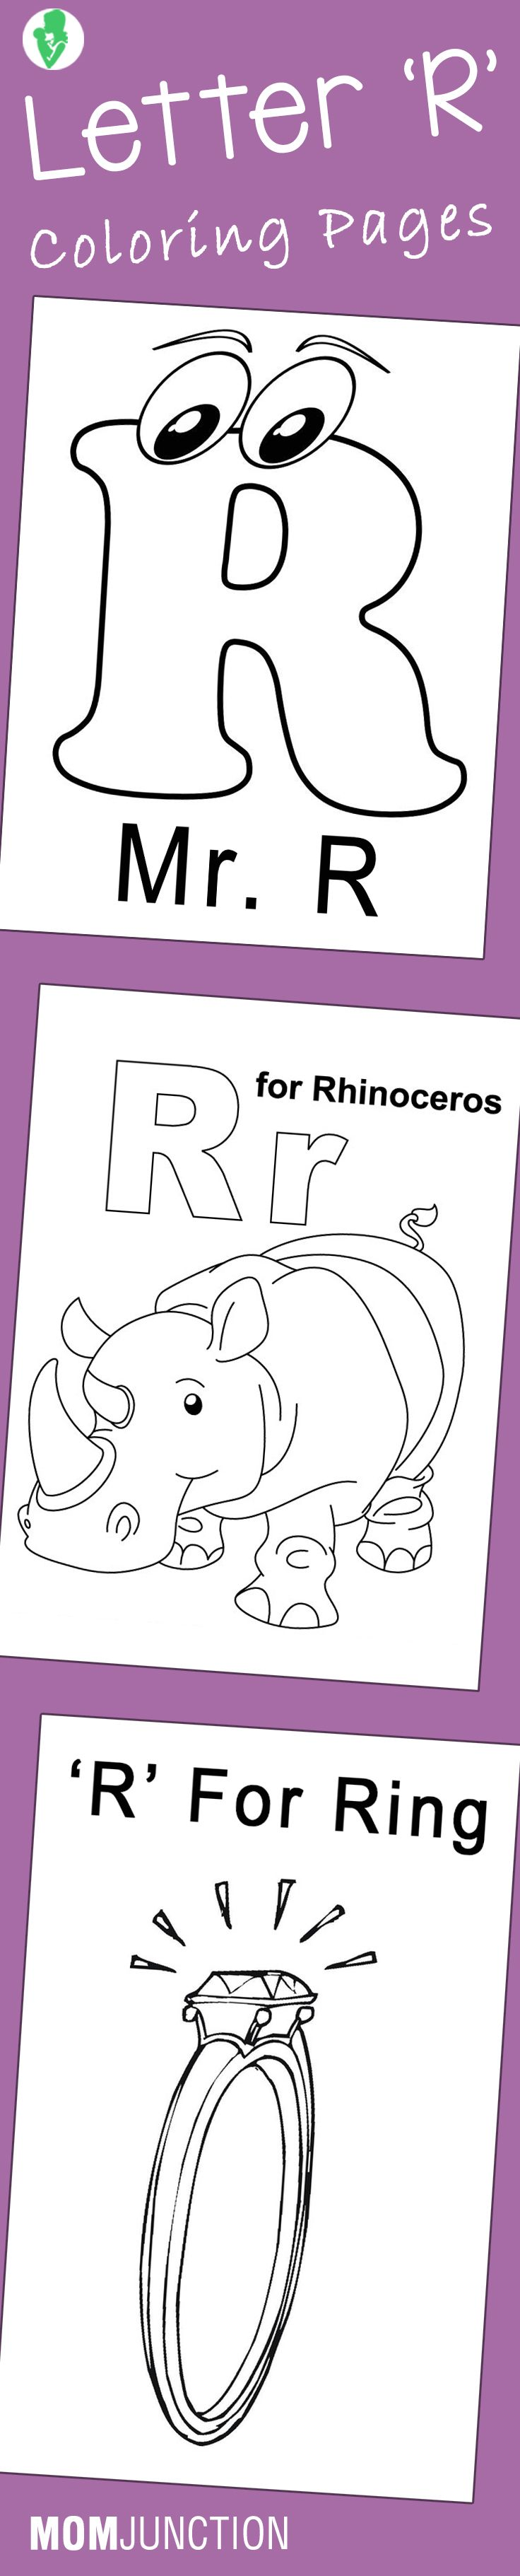 102 best Letter R Activities images